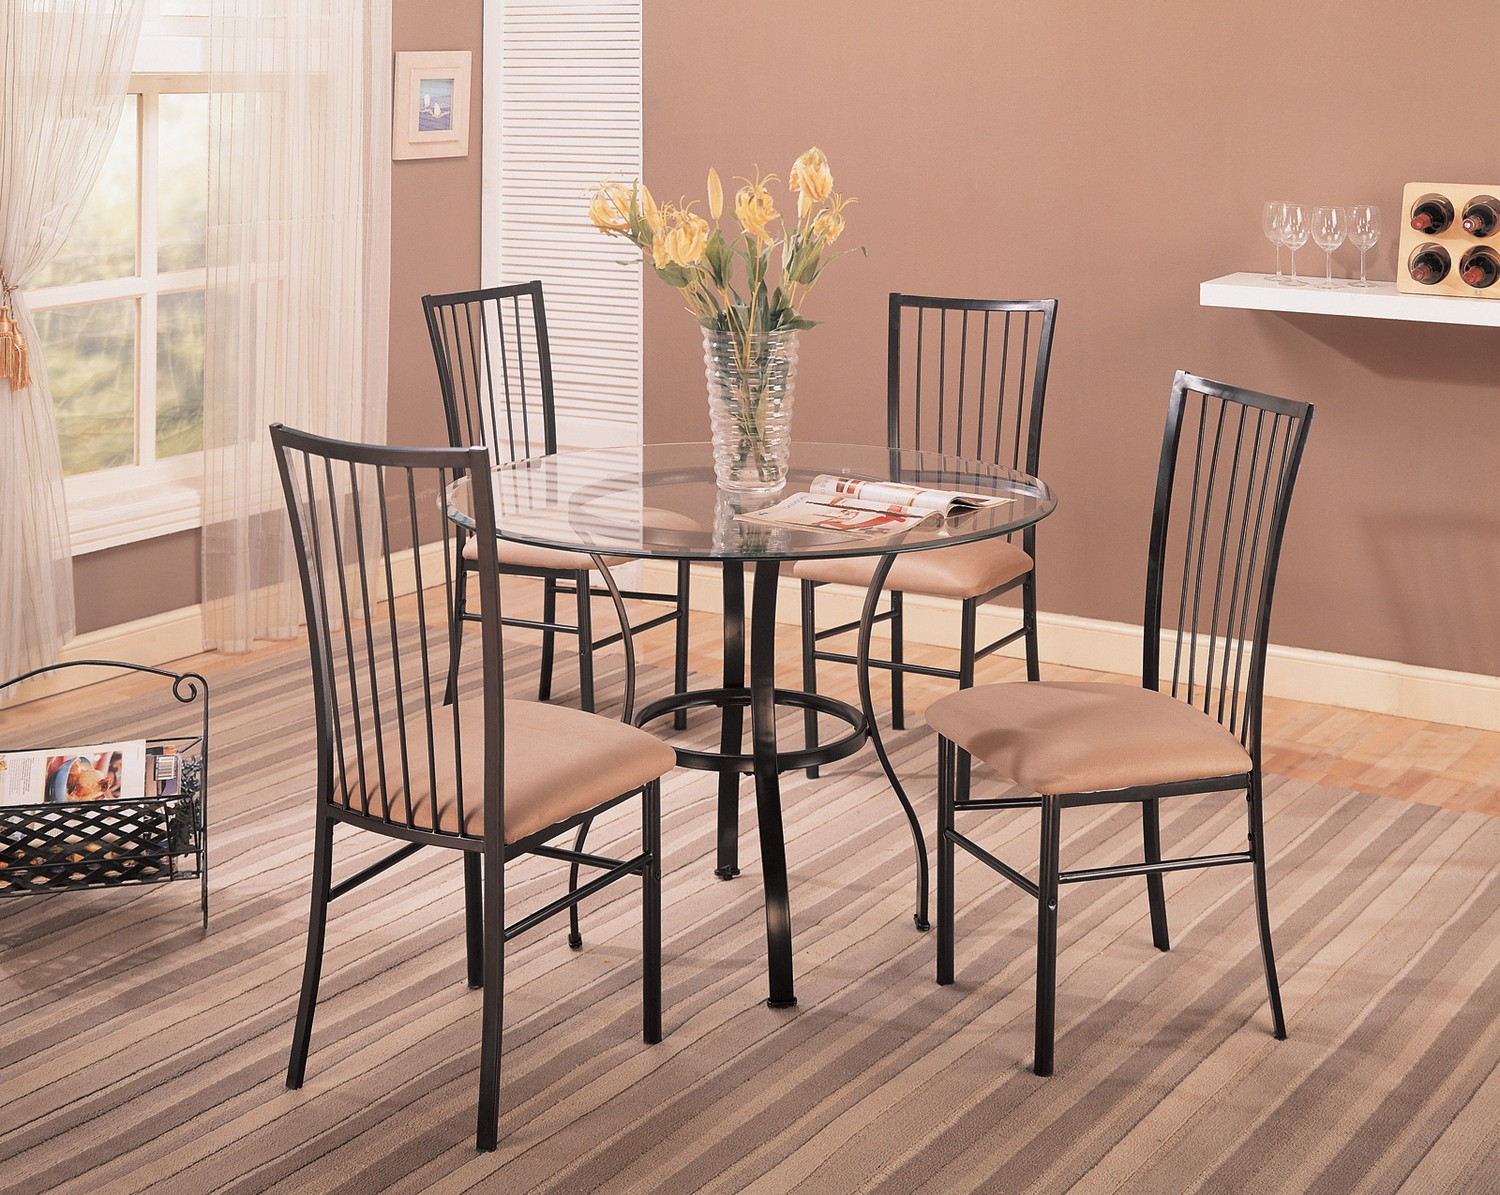 Coaster 120566 5-Piece Dining Set - Dark Metal/Tan Fabric